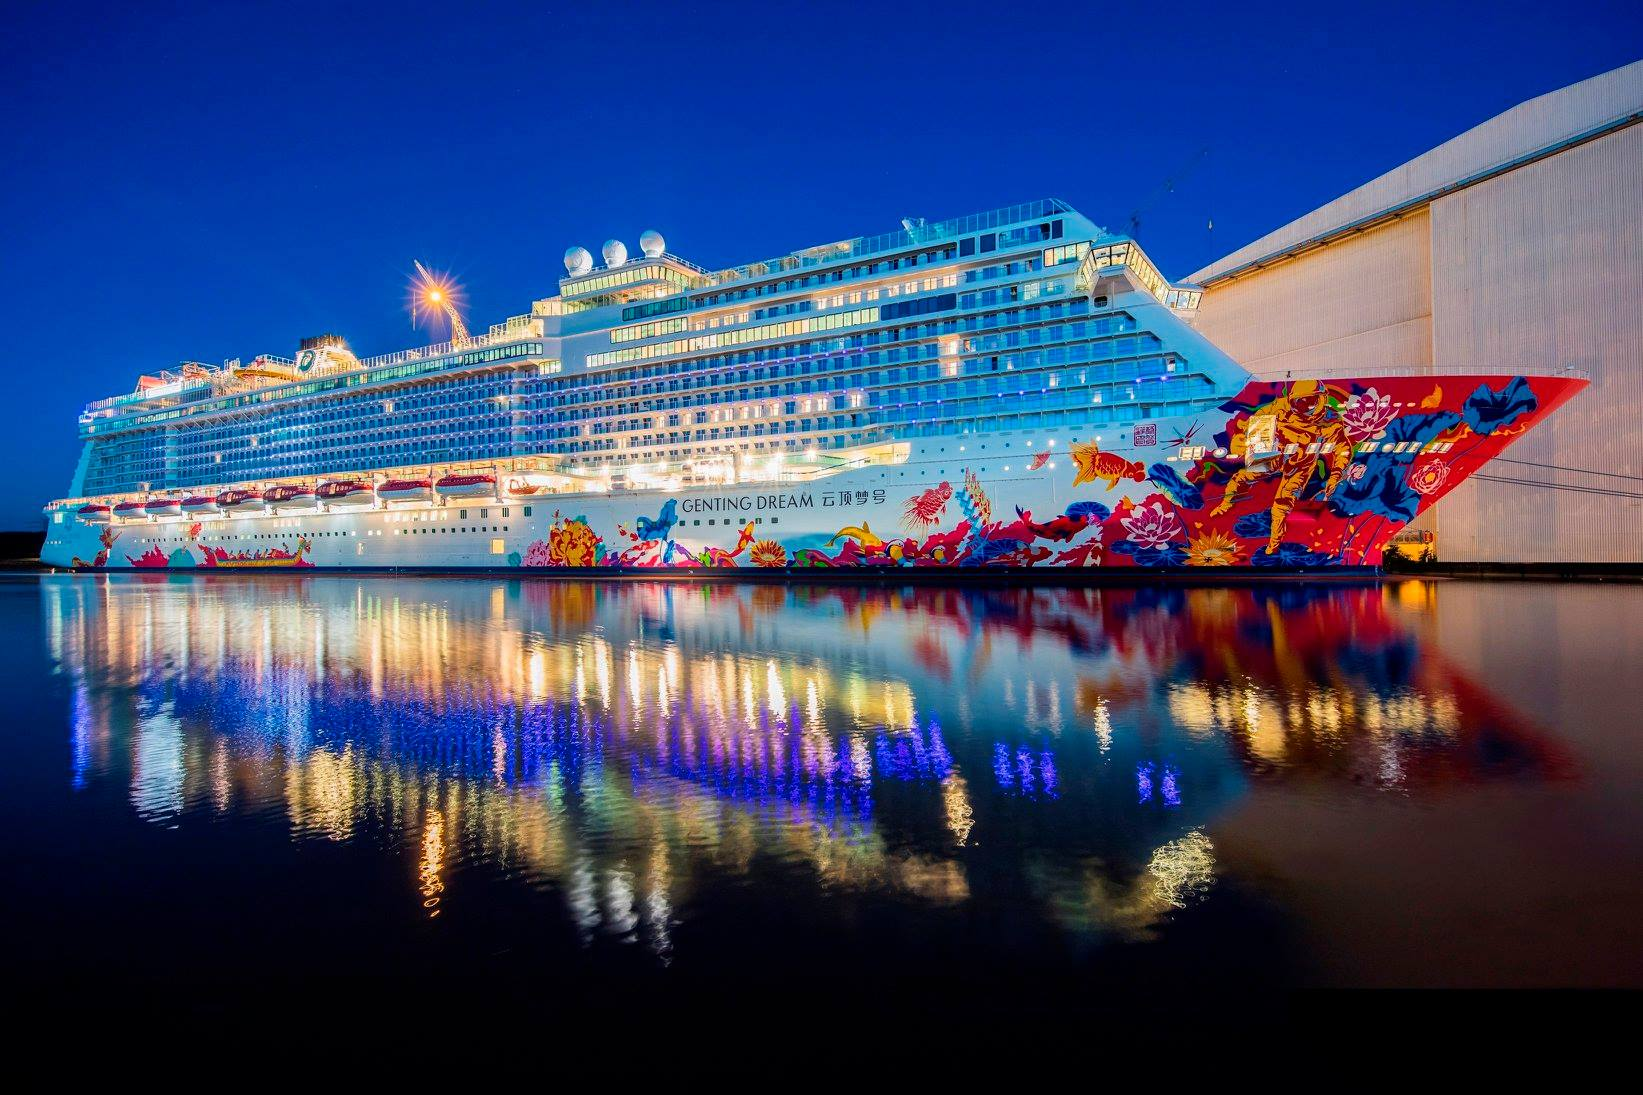 Genting Dream A 3 Night Cruise That S Both Fun And Enriching